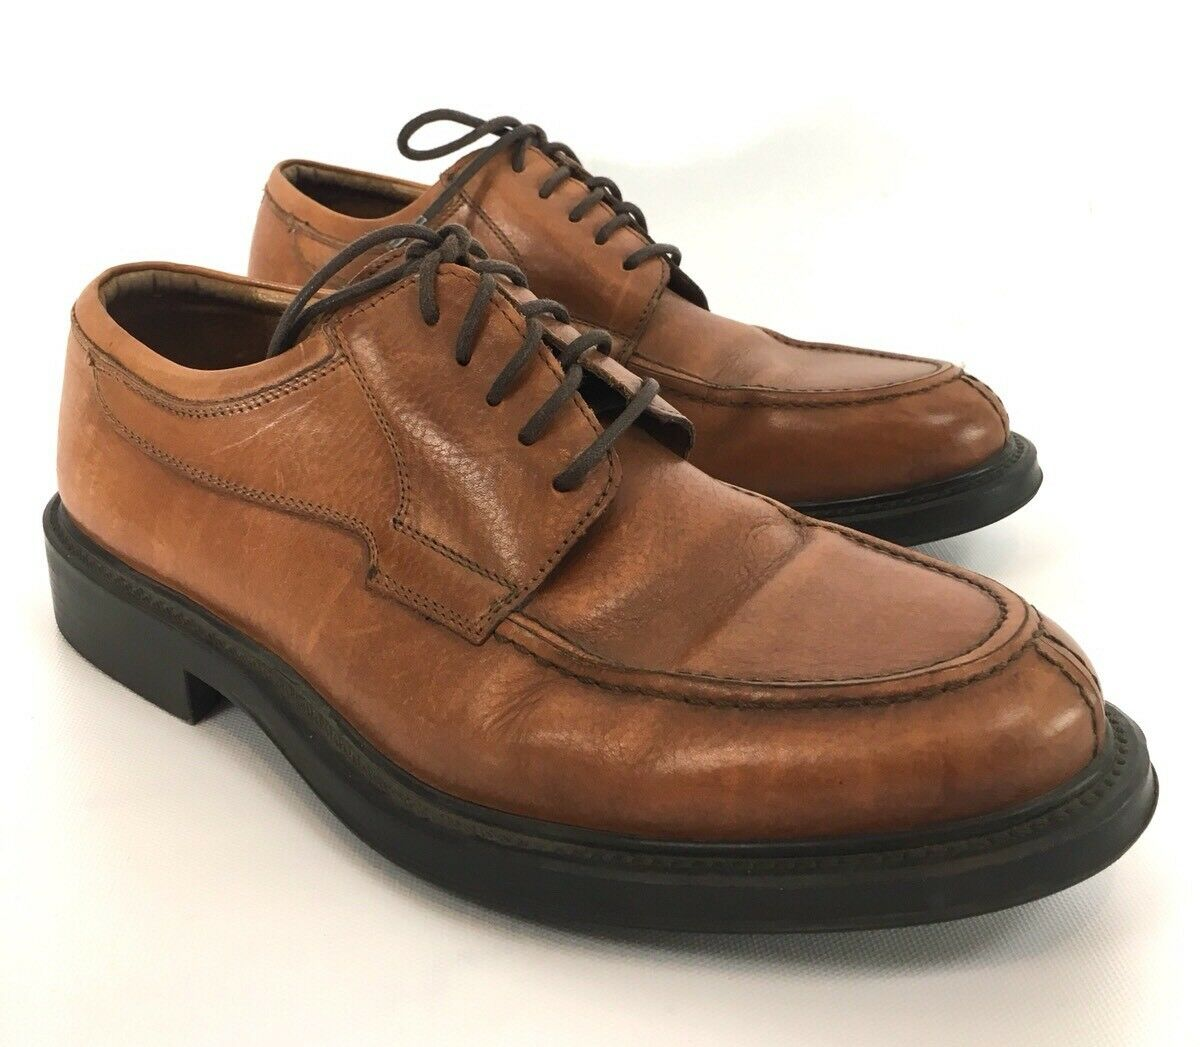 BOEMOS Uomo Oxfords Shoes Split Moc Toe Brown Pelle in Size 10.5 Made in Pelle Italy f7679d